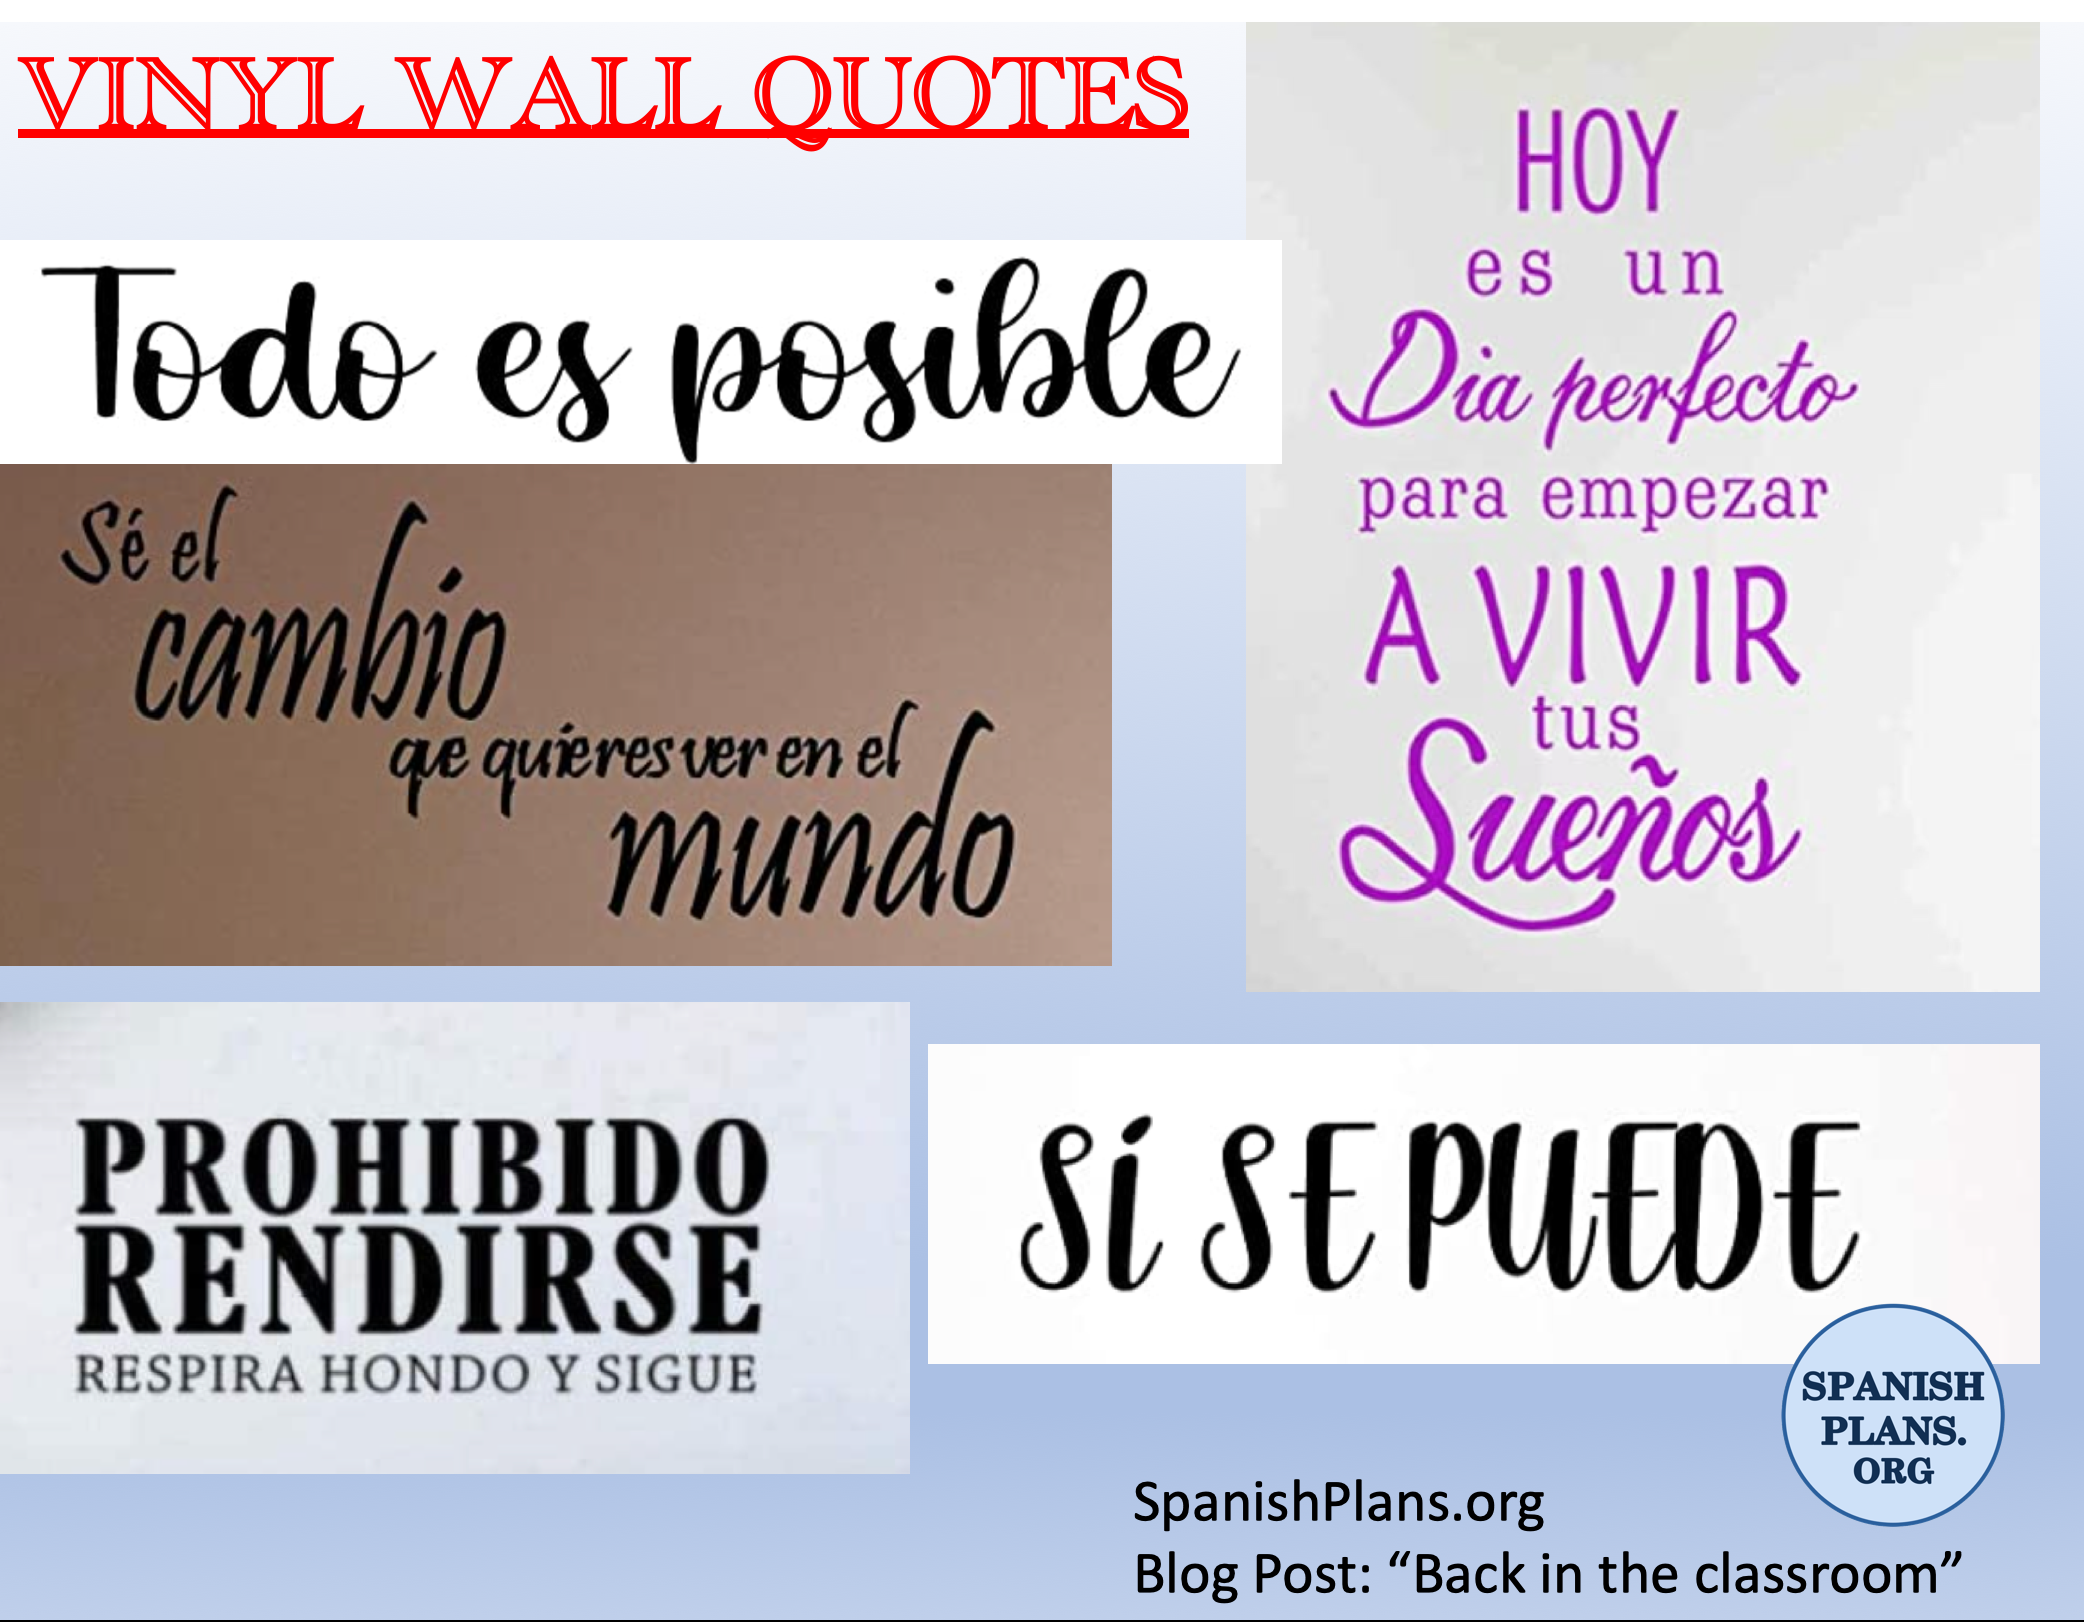 Vinyl Wall Quotes in Spanish